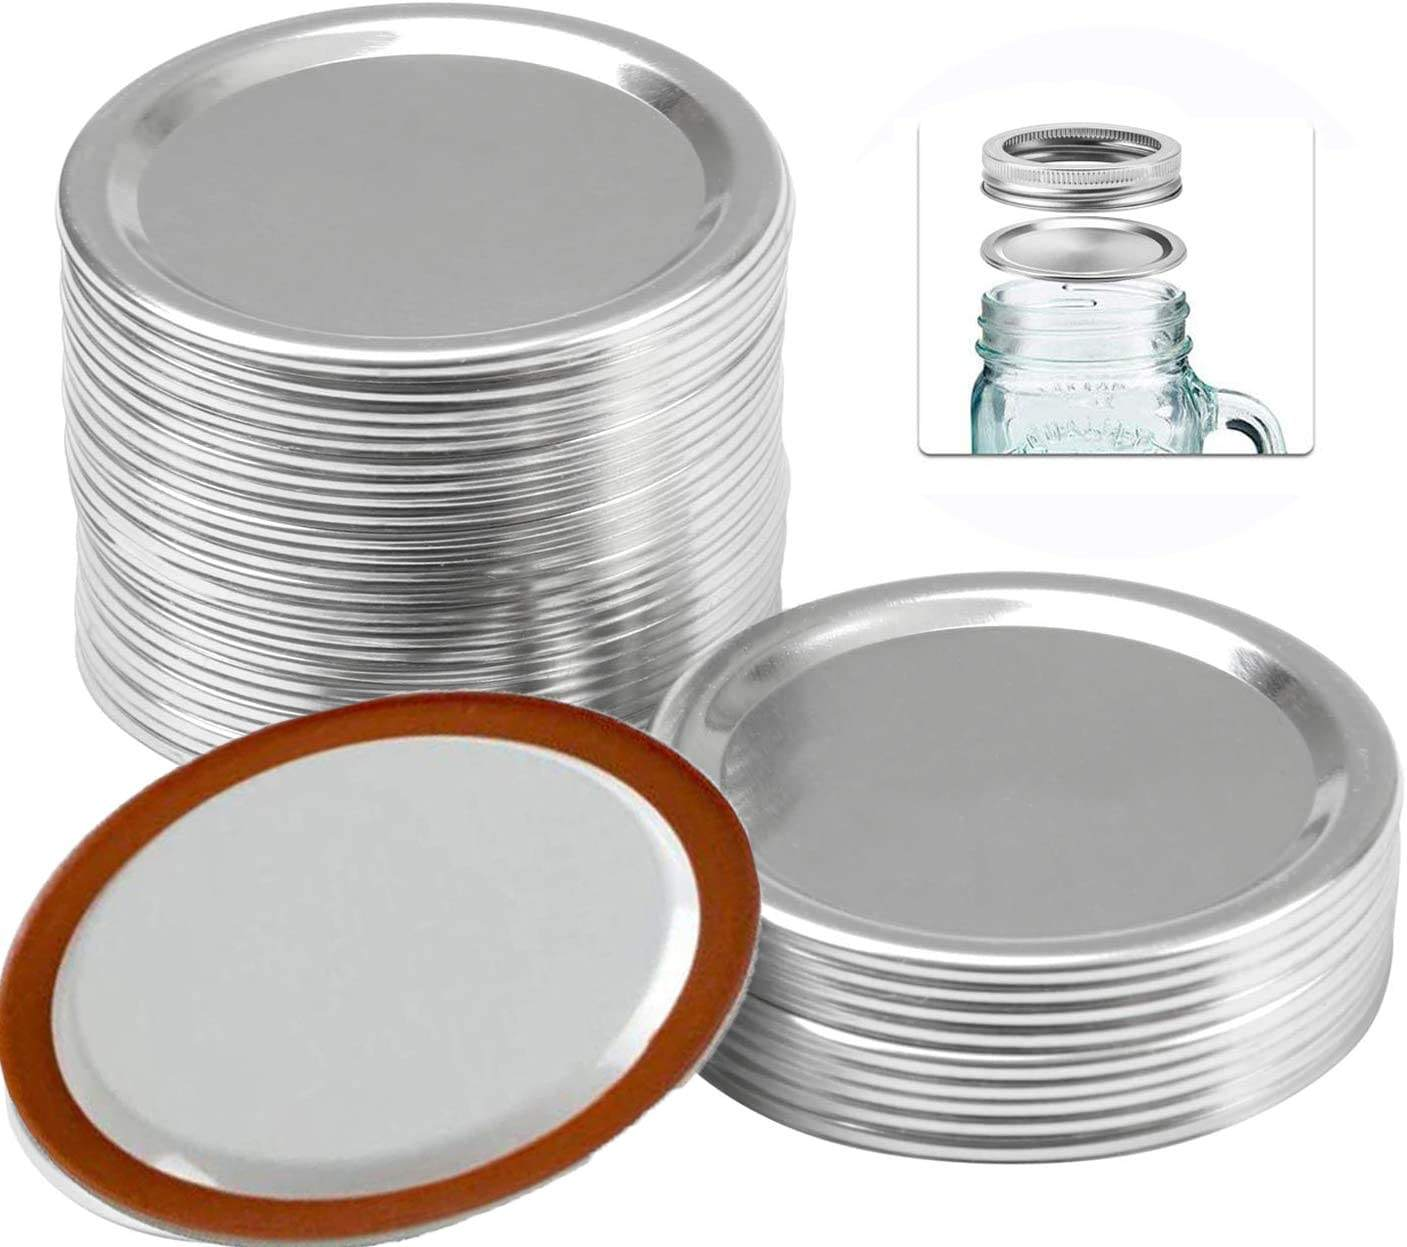 2020 Split-type Leak Proof And Secure Tinplate Regular Mouth Mason Jar Lids Canning Jar Caps Cover for Daily Kitchen Home Use